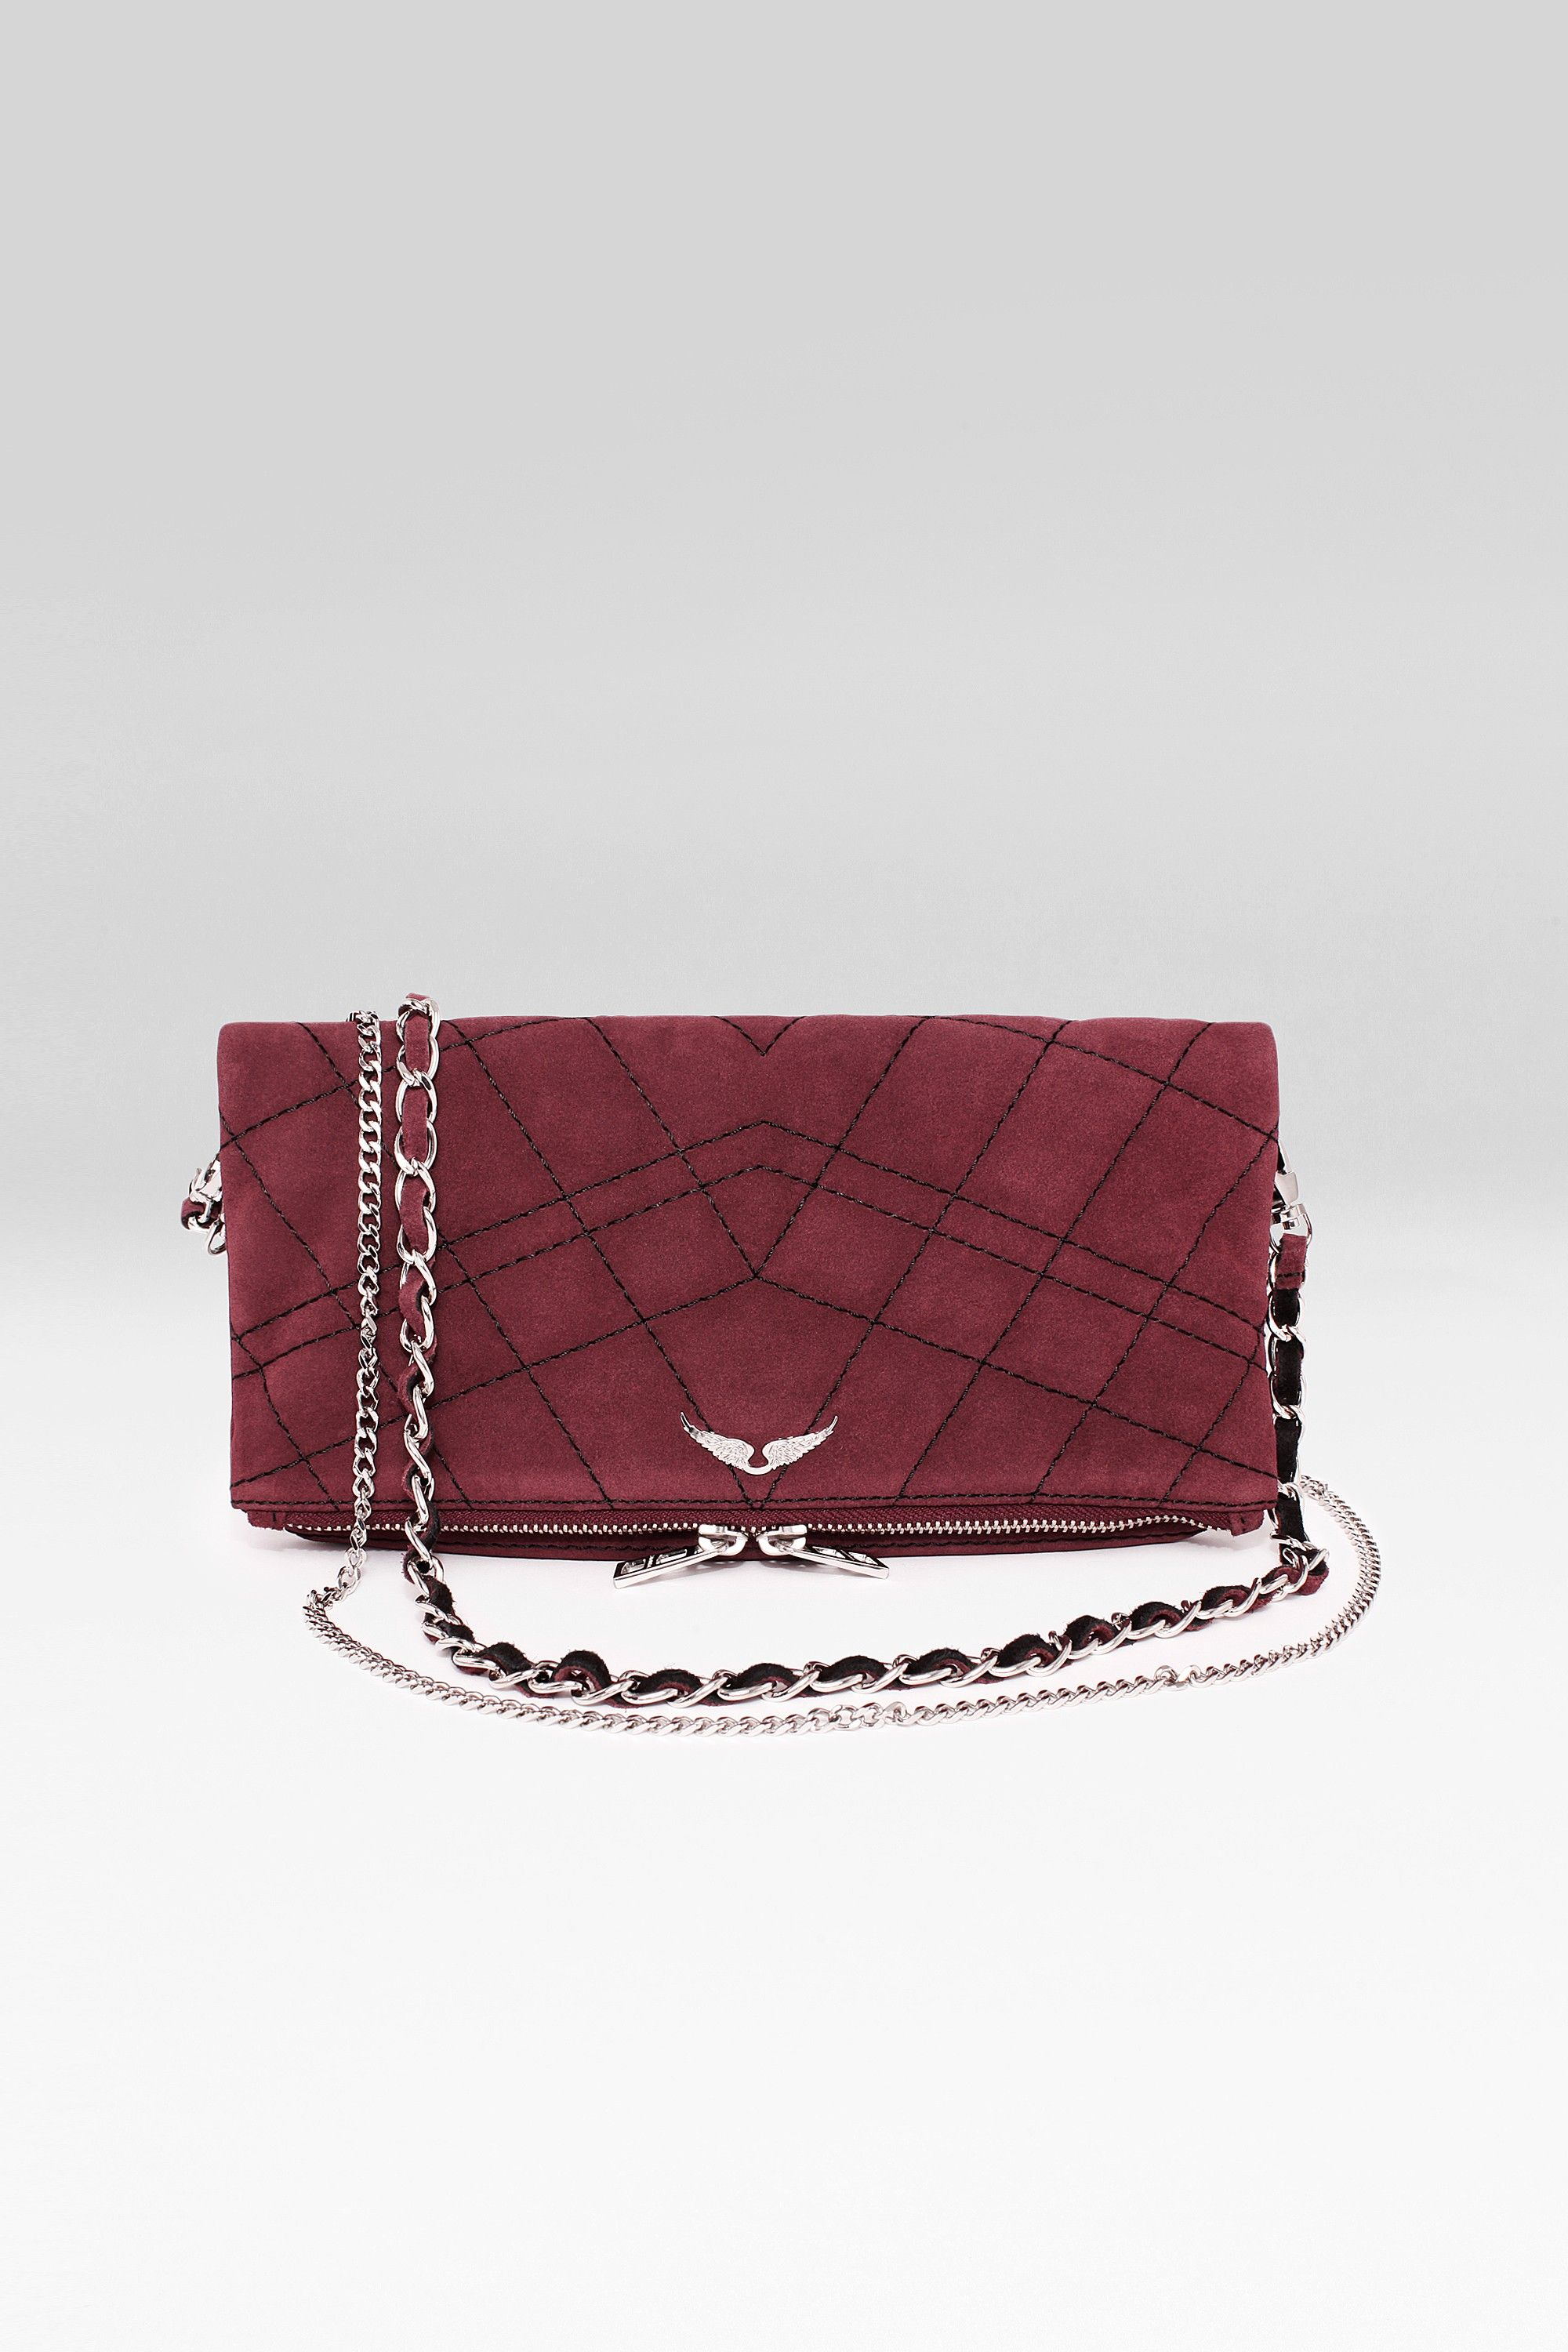 Leather quilted handbags and purses - Image Result For Zadig And Voltaire Bag Suede